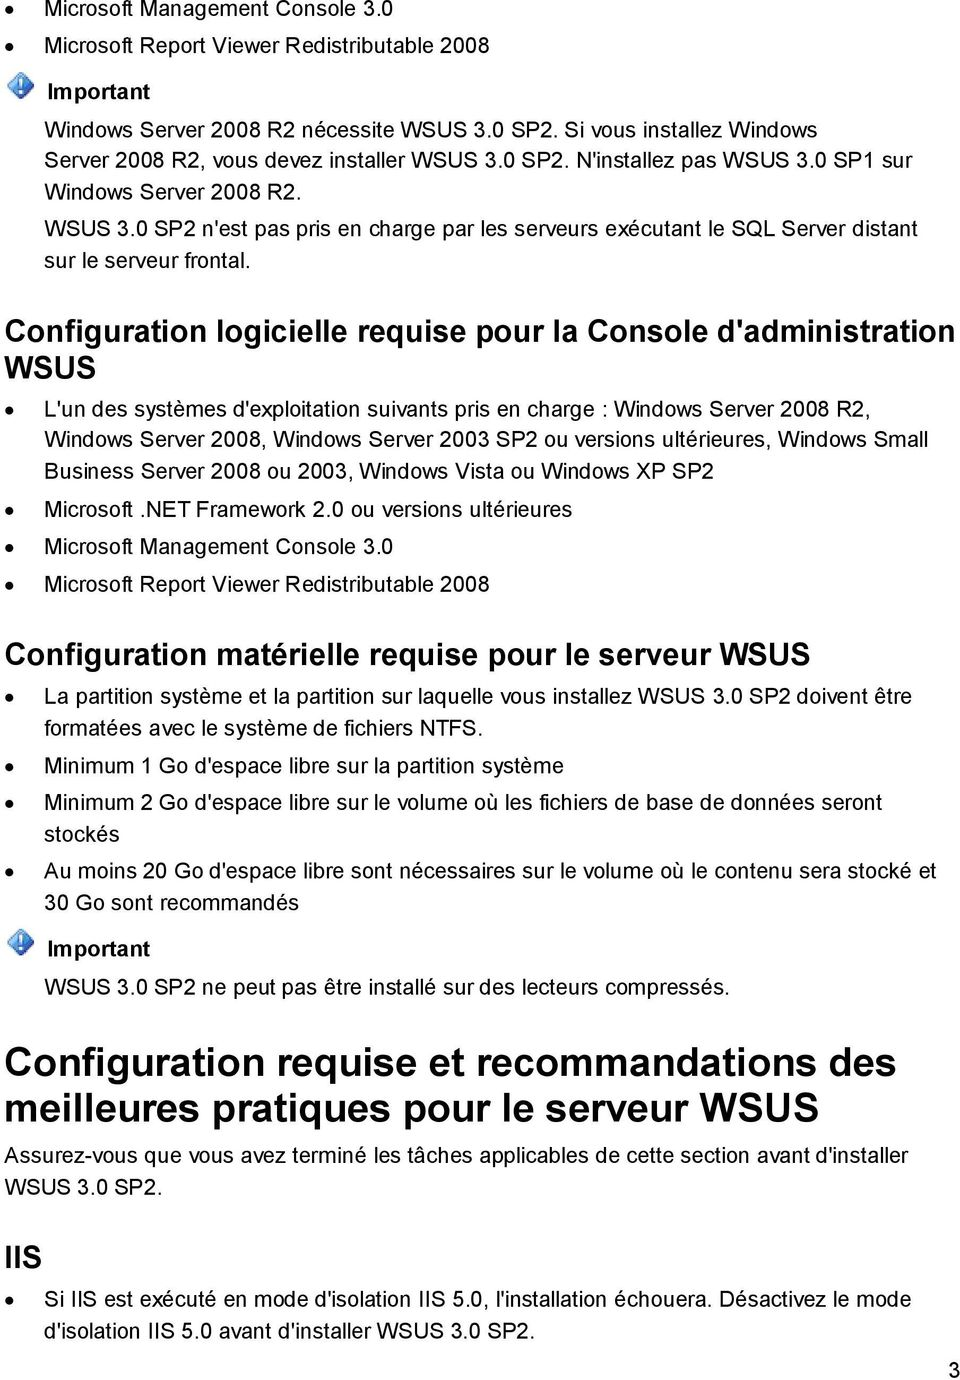 Configuration logicielle requise pour la Console d'administration WSUS L'un des systèmes d'exploitation suivants pris en charge : Windows Server 2008 R2, Windows Server 2008, Windows Server 2003 SP2